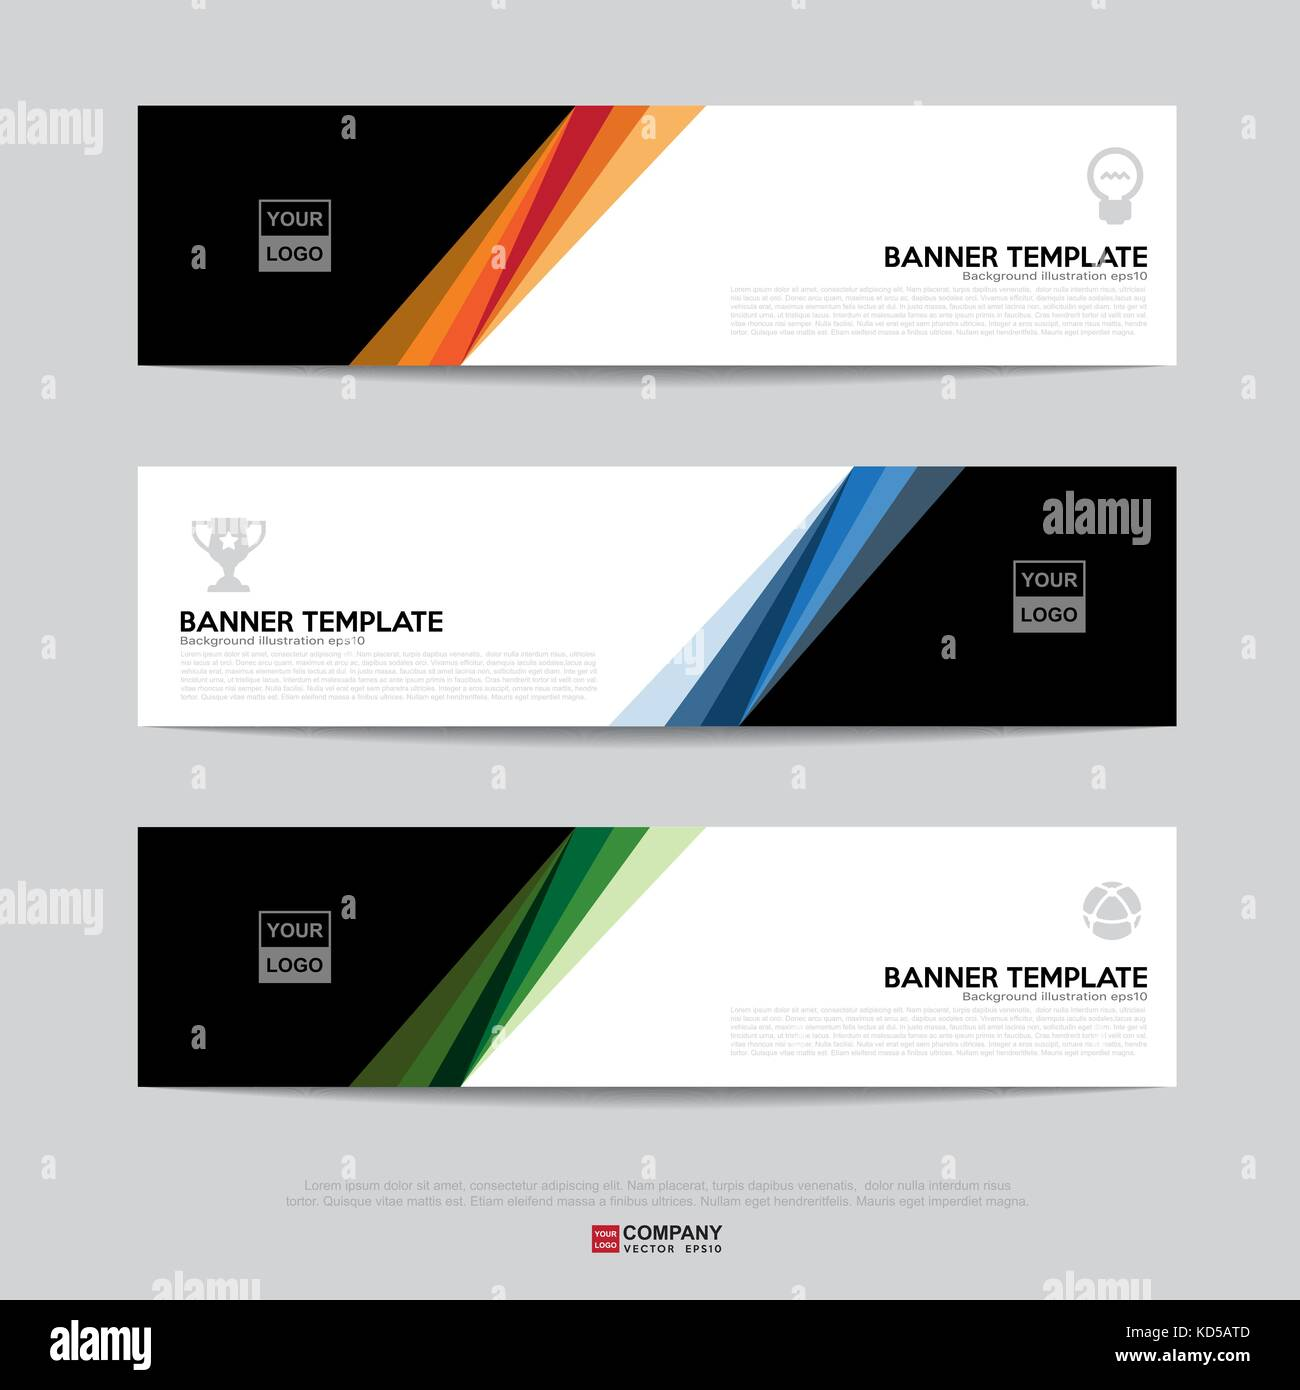 Design of flyers banners brochures and cards templatebanner design of flyers banners brochures and cards templatebanner design for business presentationheader templatebanner for web template cheaphphosting Image collections